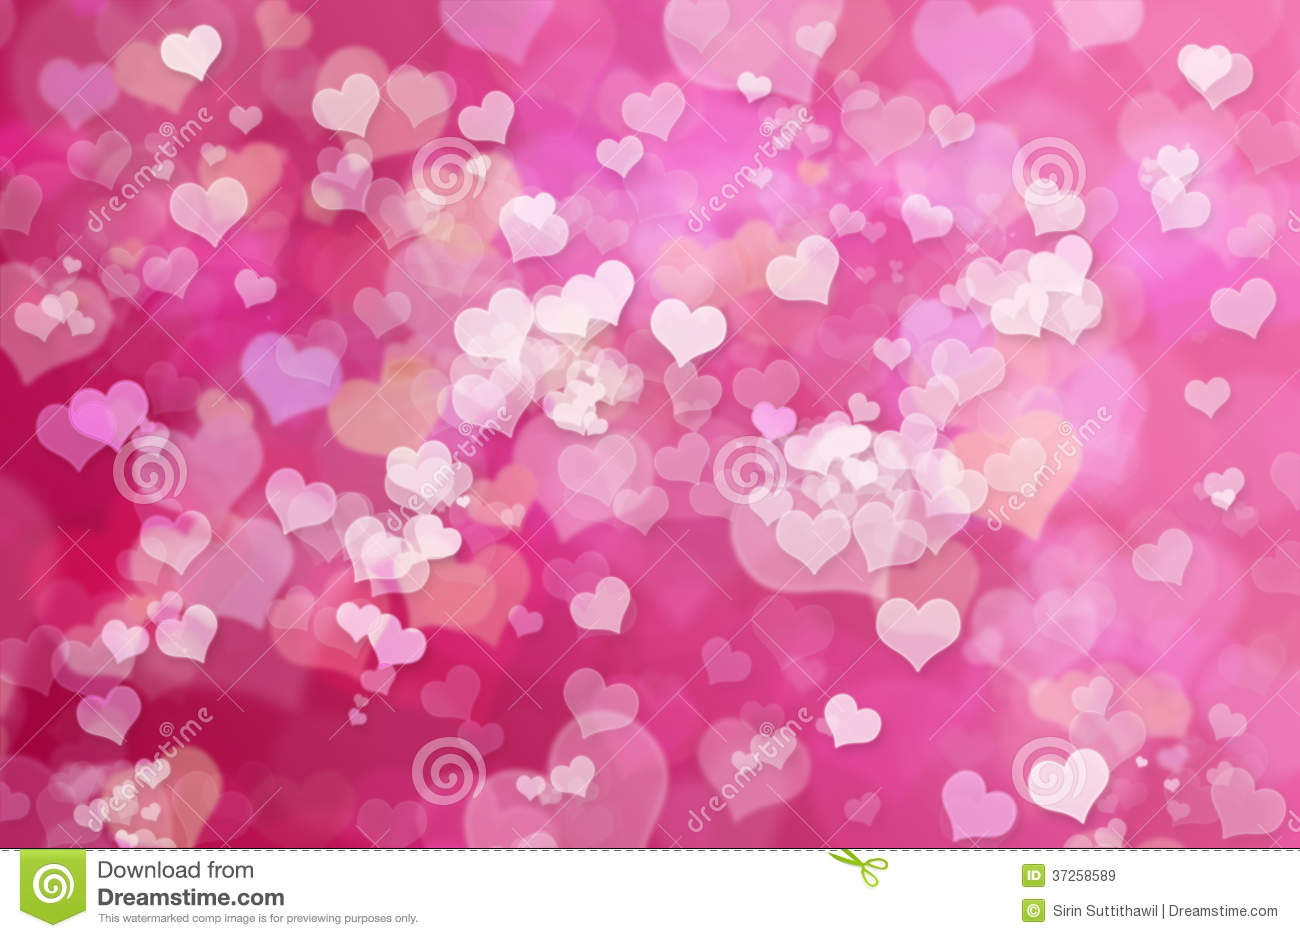 Valentine Hearts Abstract Pink Background : Papier peint de Saint-Valentin